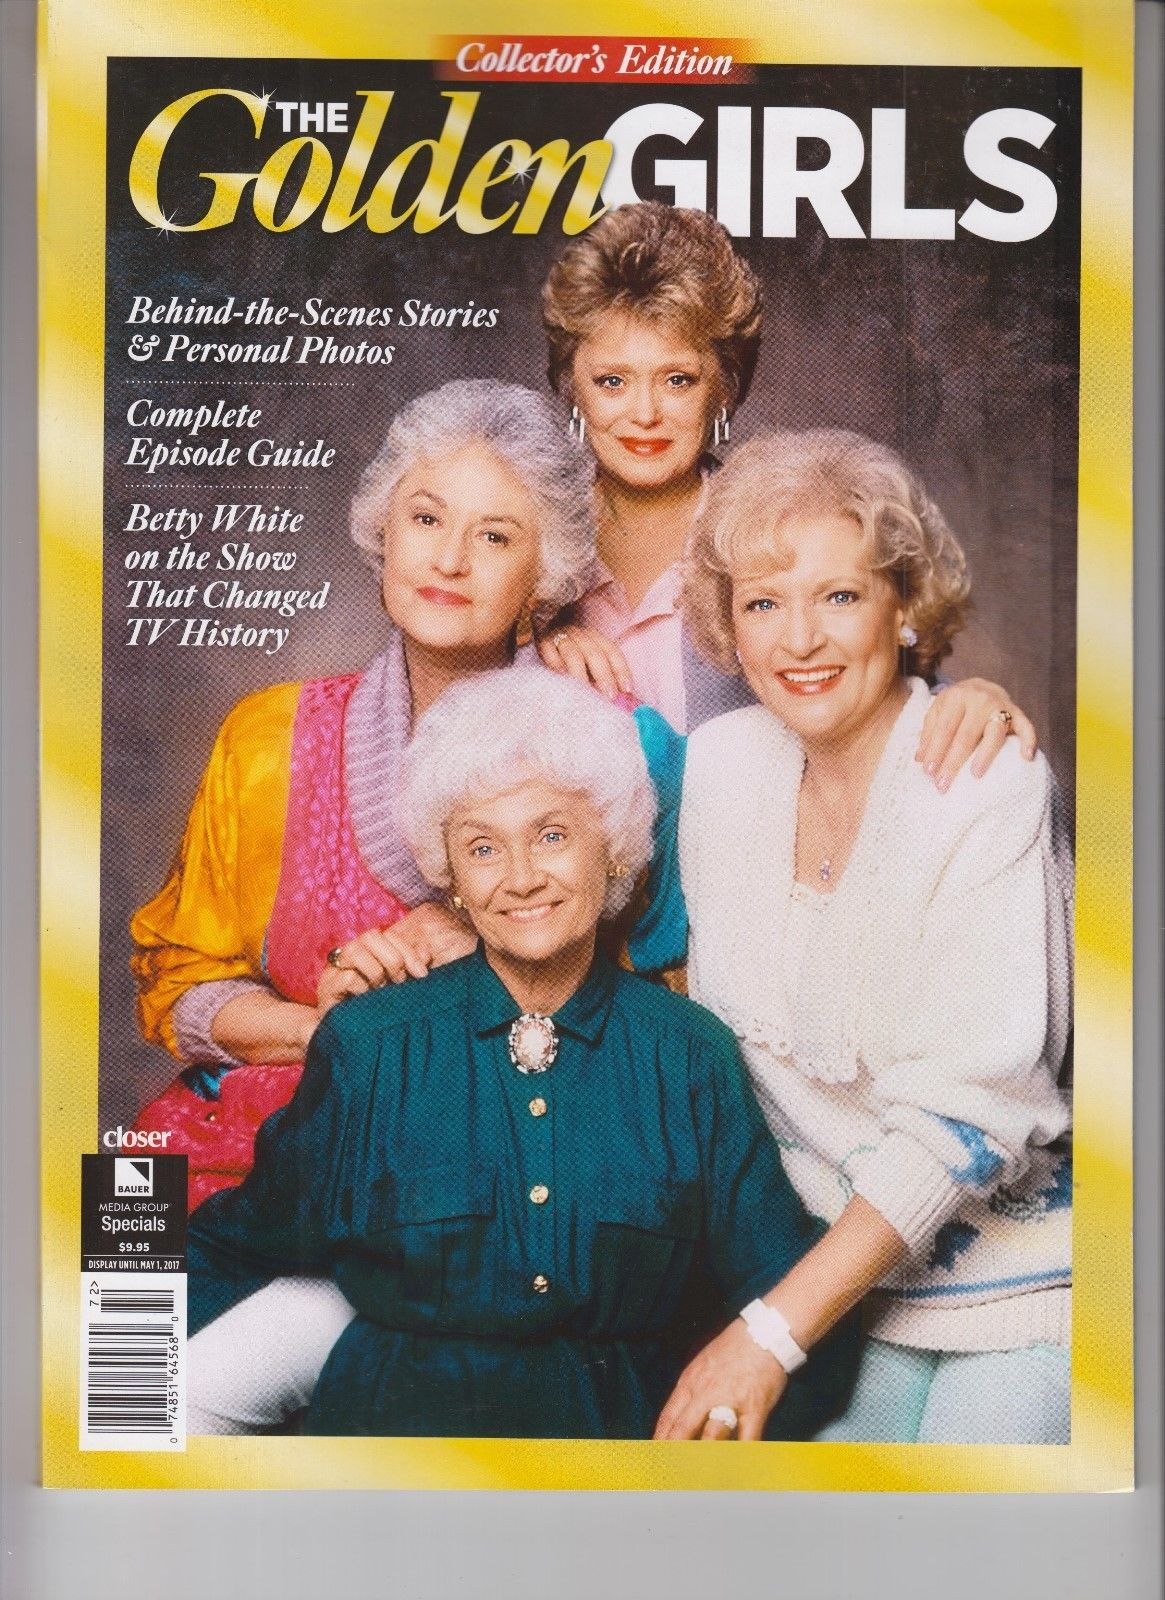 GOLDEN_GIRLS_CLOSER_WEEKLY_MAGAZINE_2017_COLLECTOR_S_EDITION_BETTE_WHITE